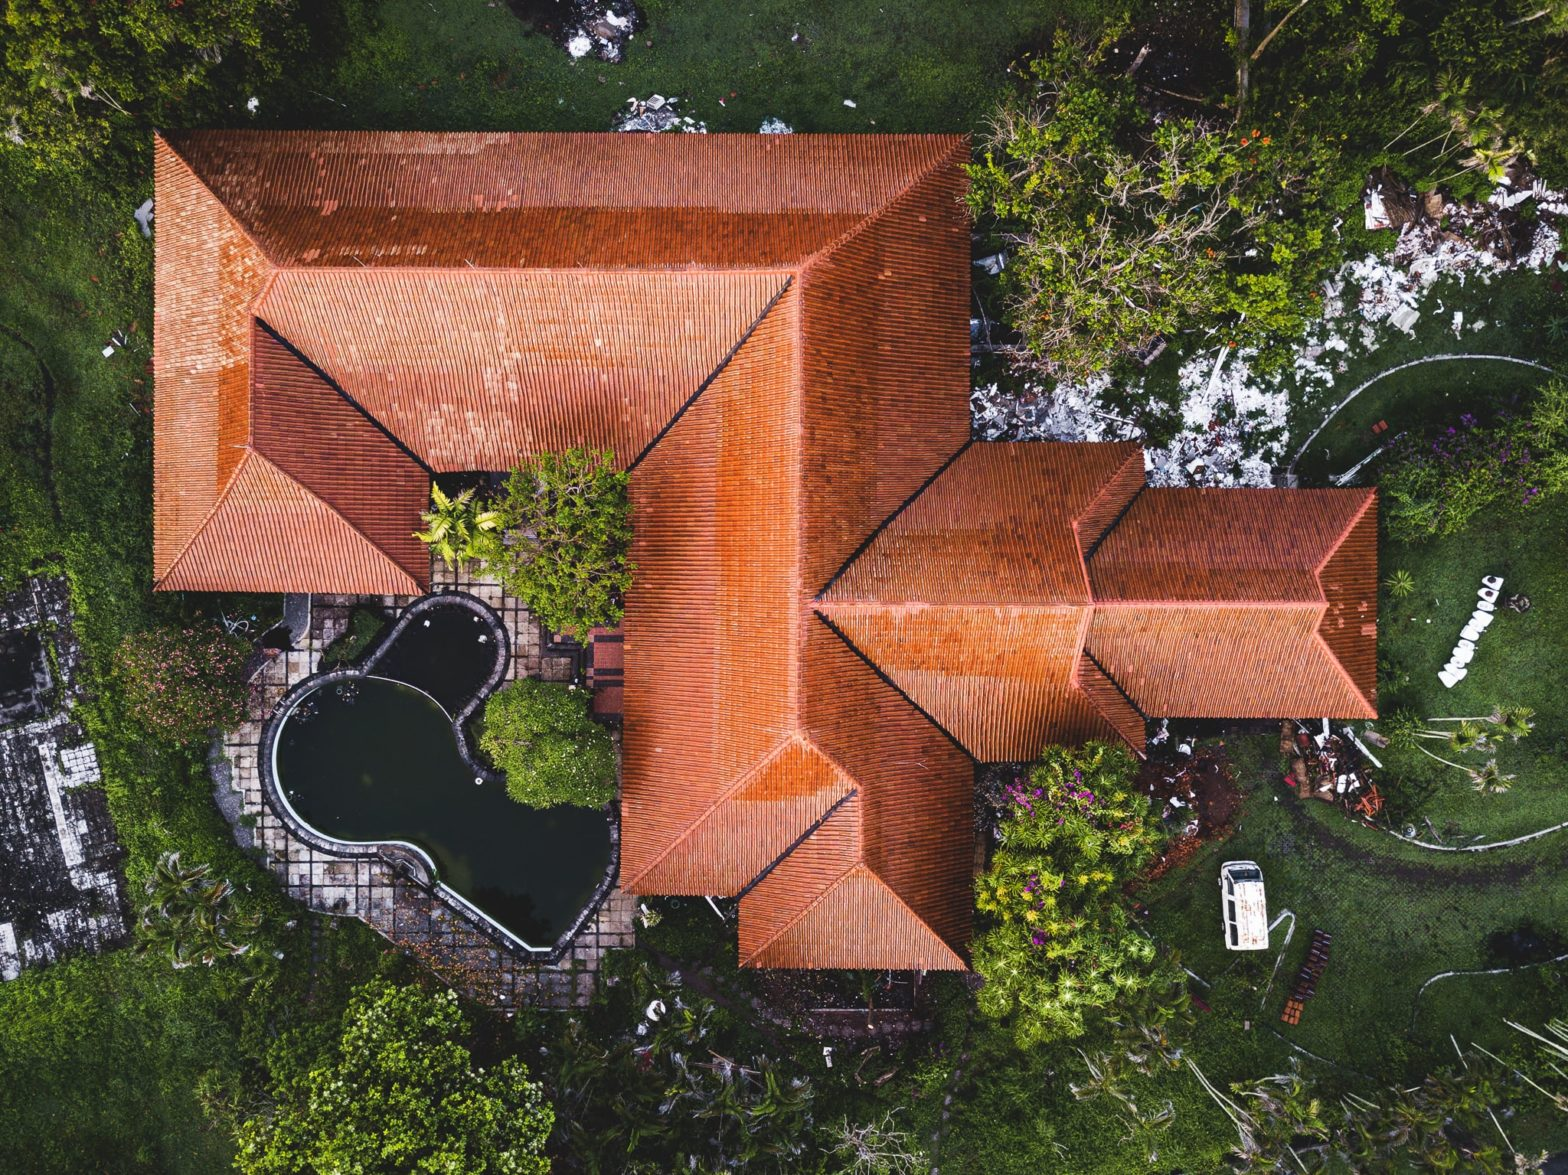 An aerial view of an abandoned resort building with a bright terracotta roof